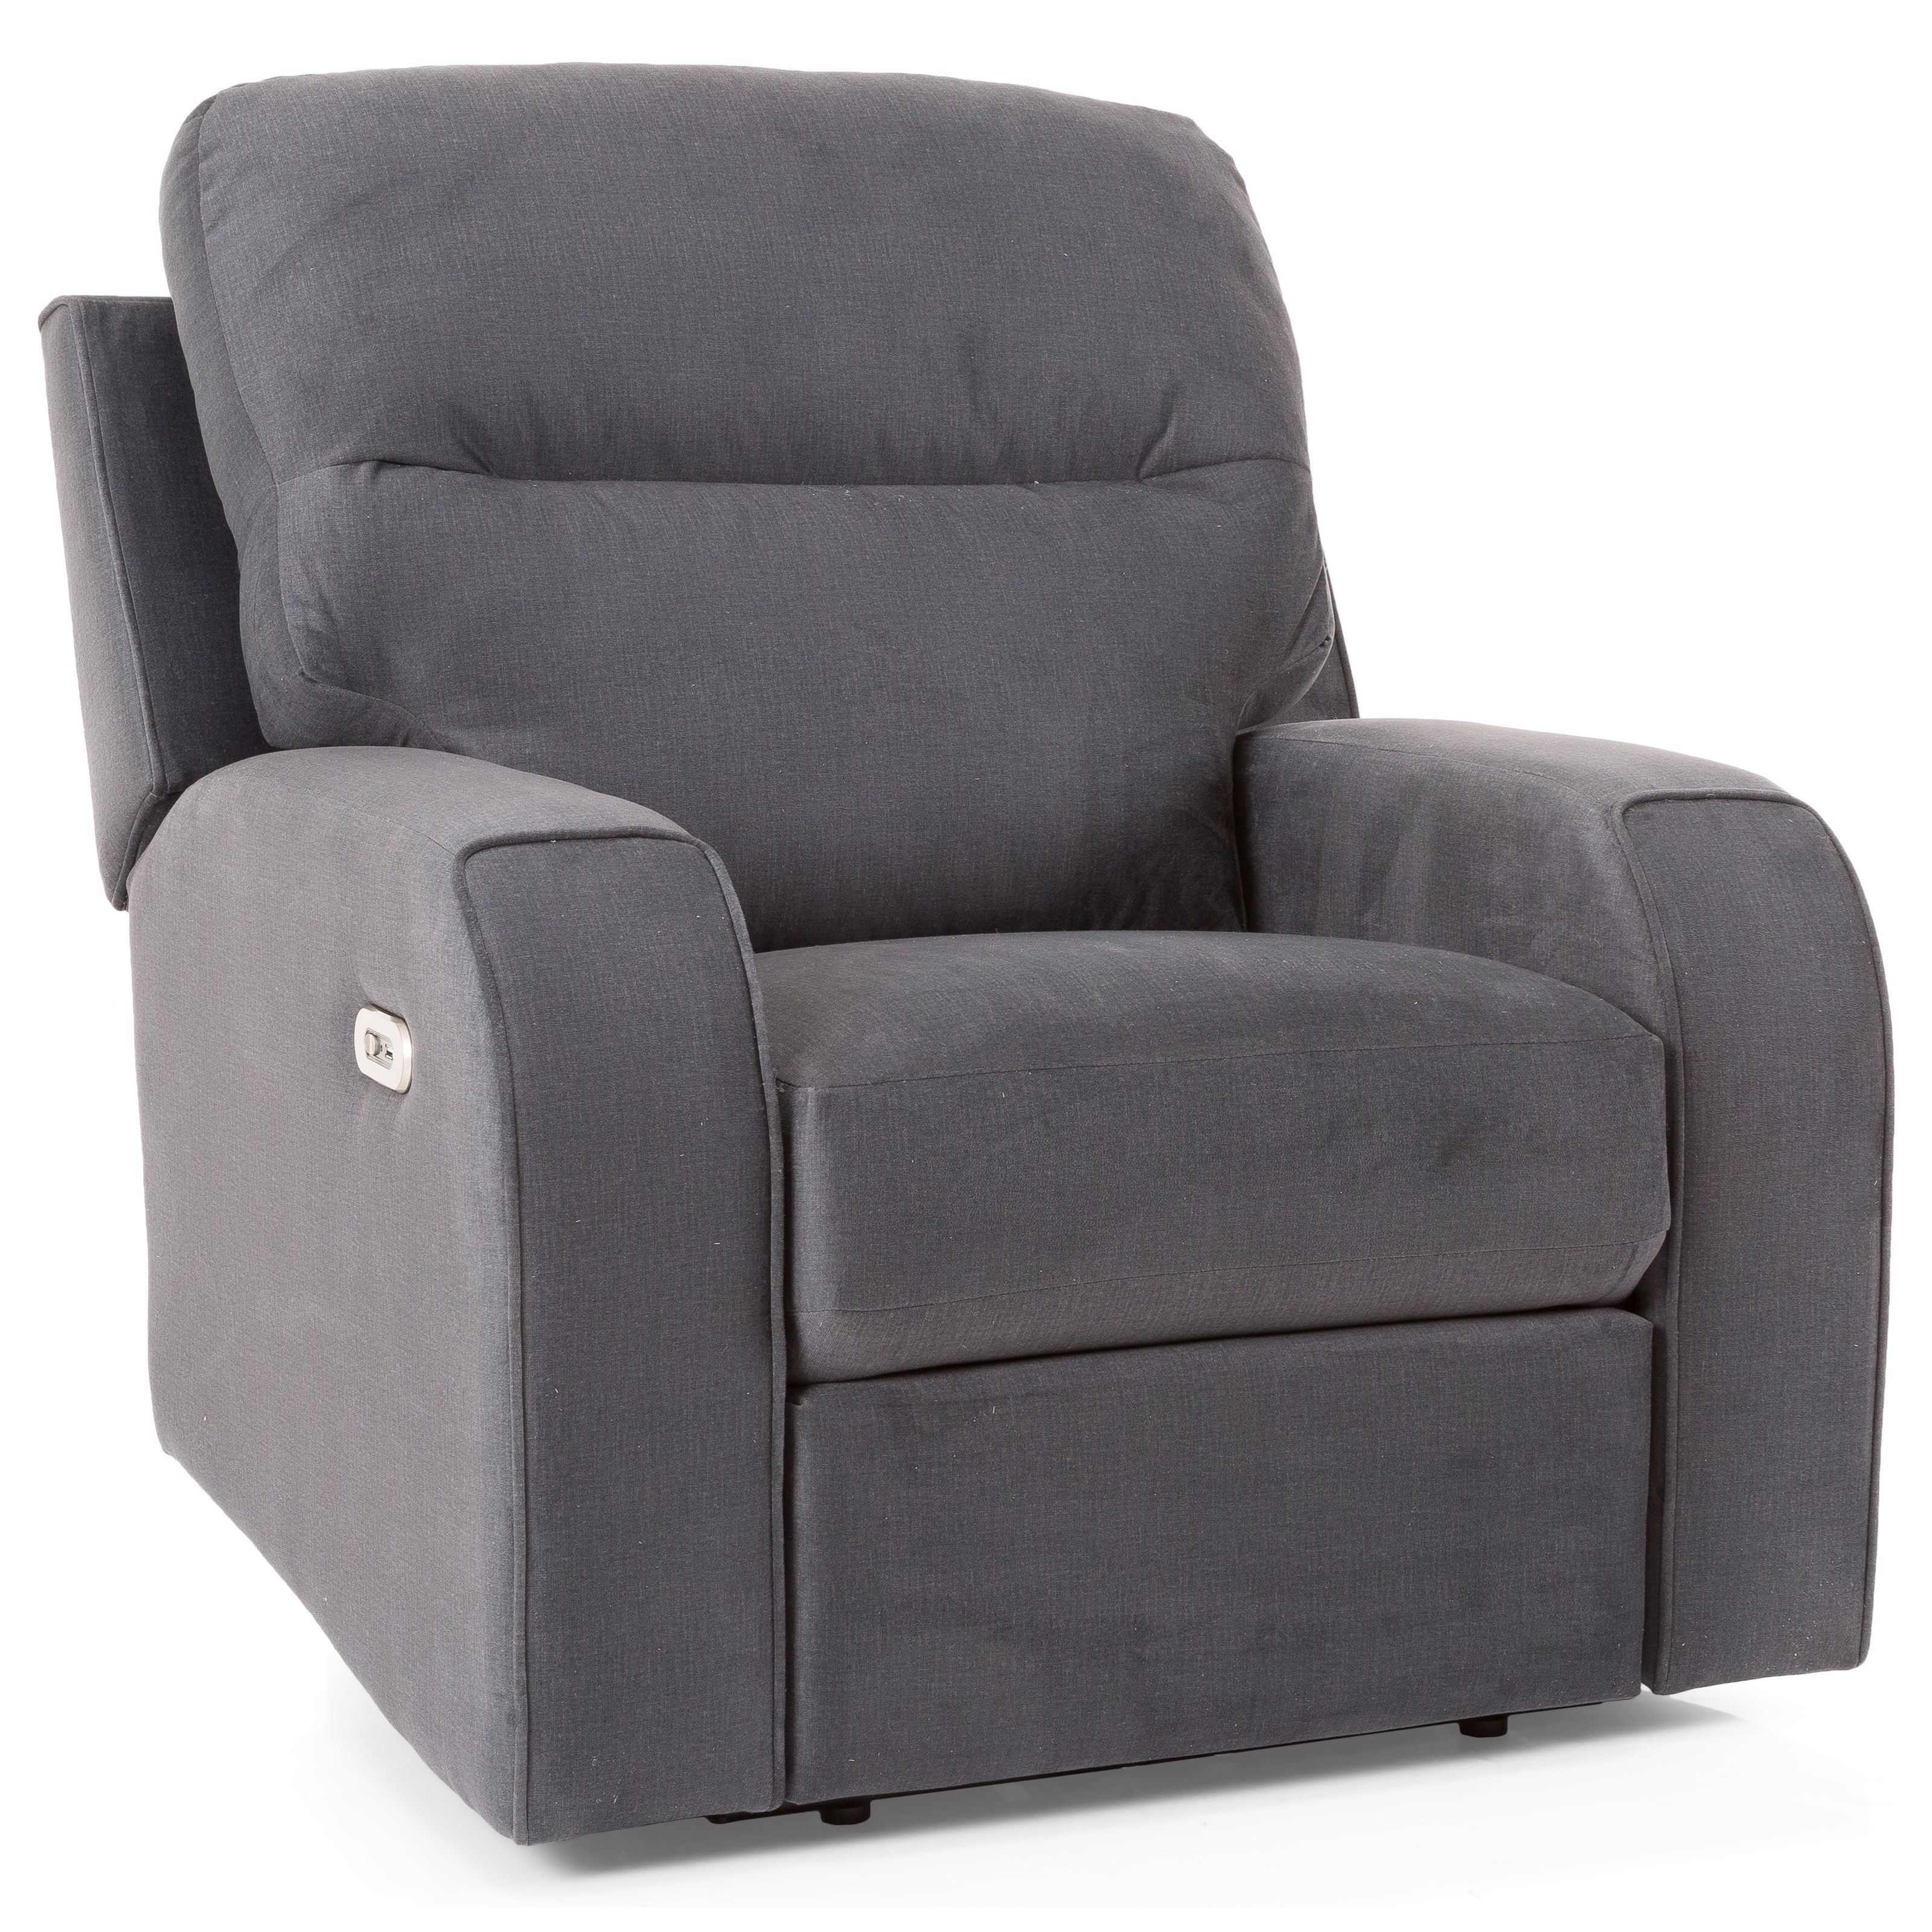 M844 Power Tilt Glider Recliner by Decor-Rest at Johnny Janosik